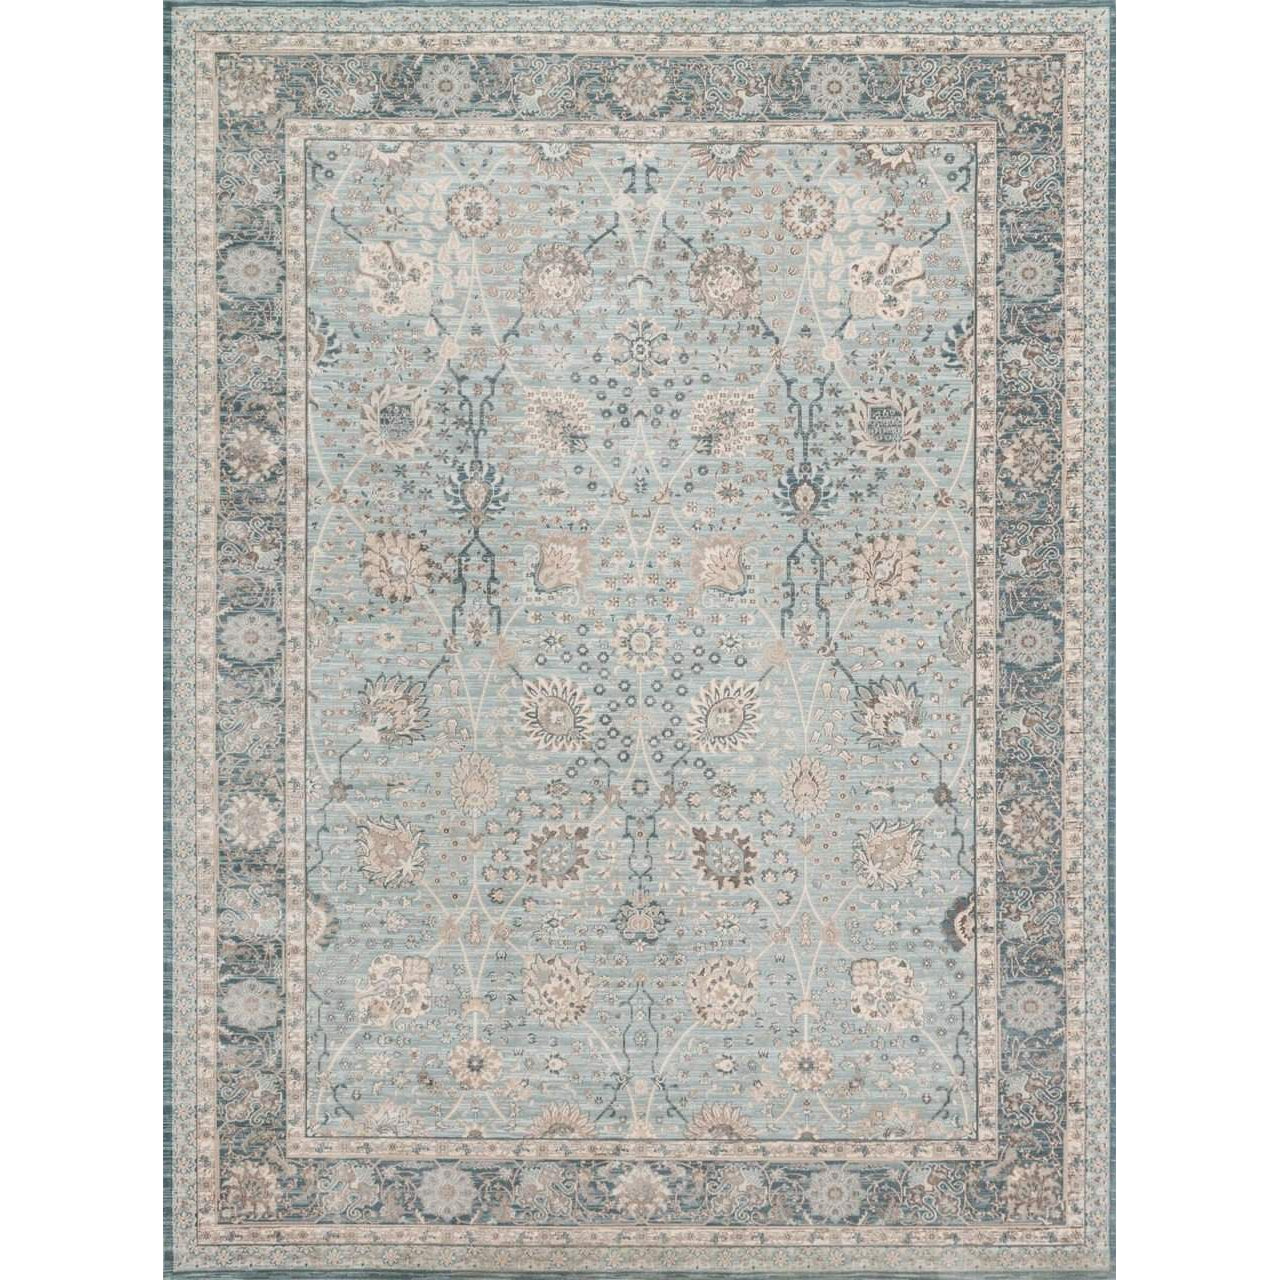 Joanna Gaines Magnolia Home Rug - Ella Rose Collection - Lt Blue / Dk Blue - Blue Hand Home